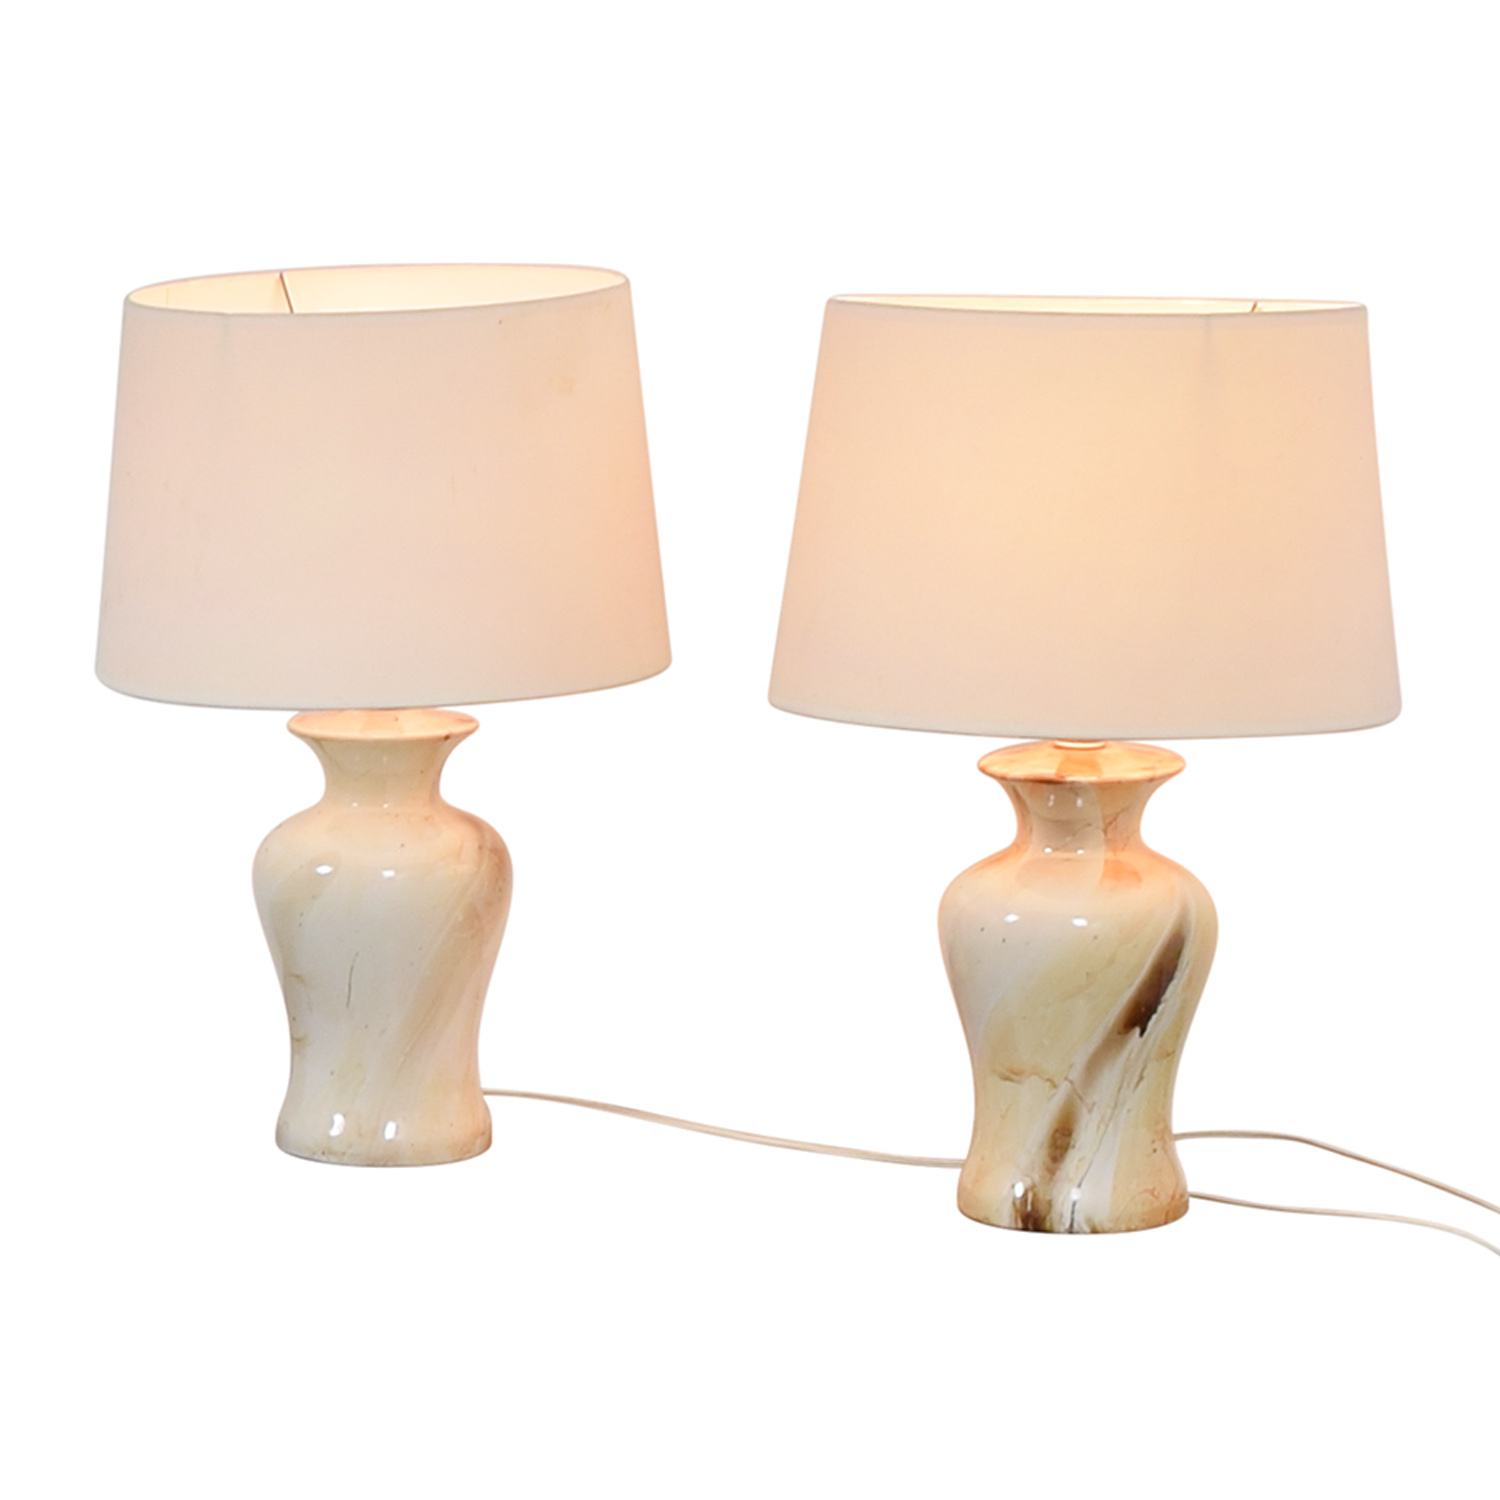 Ginger Jar Lamps price